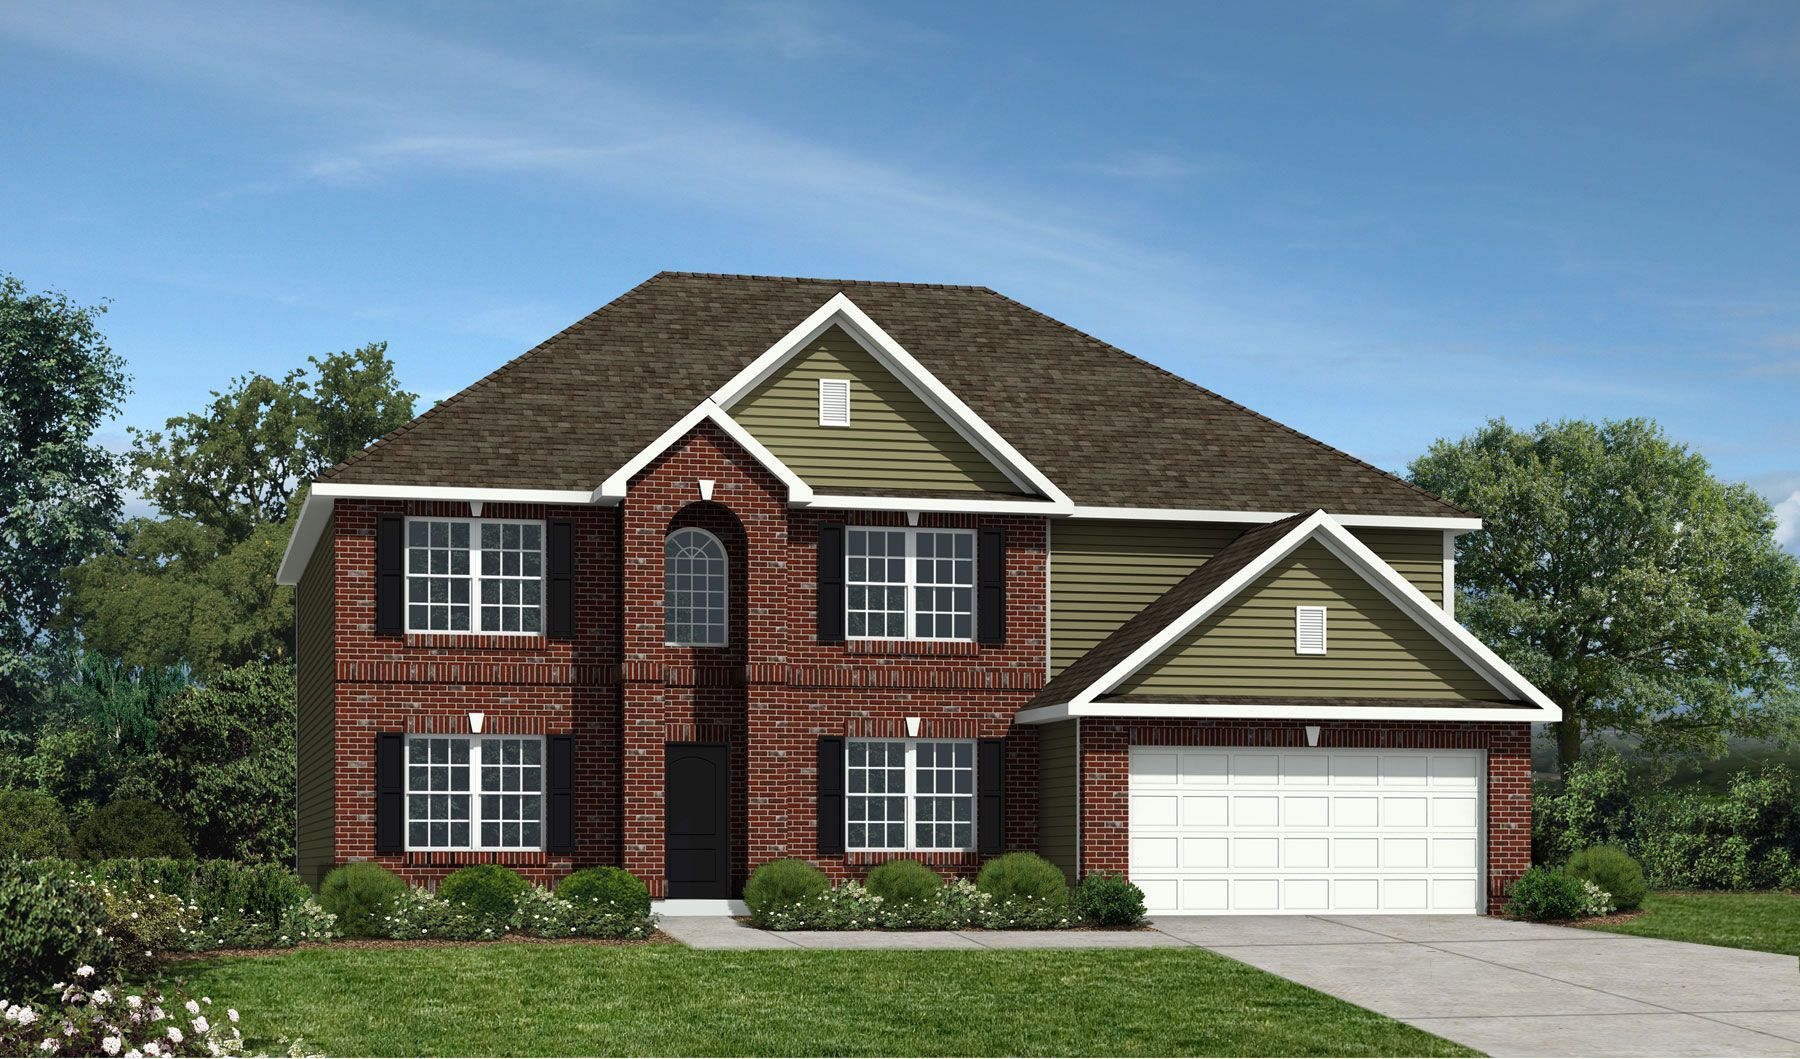 Heron Creek by Westport Homes of Indianapolis